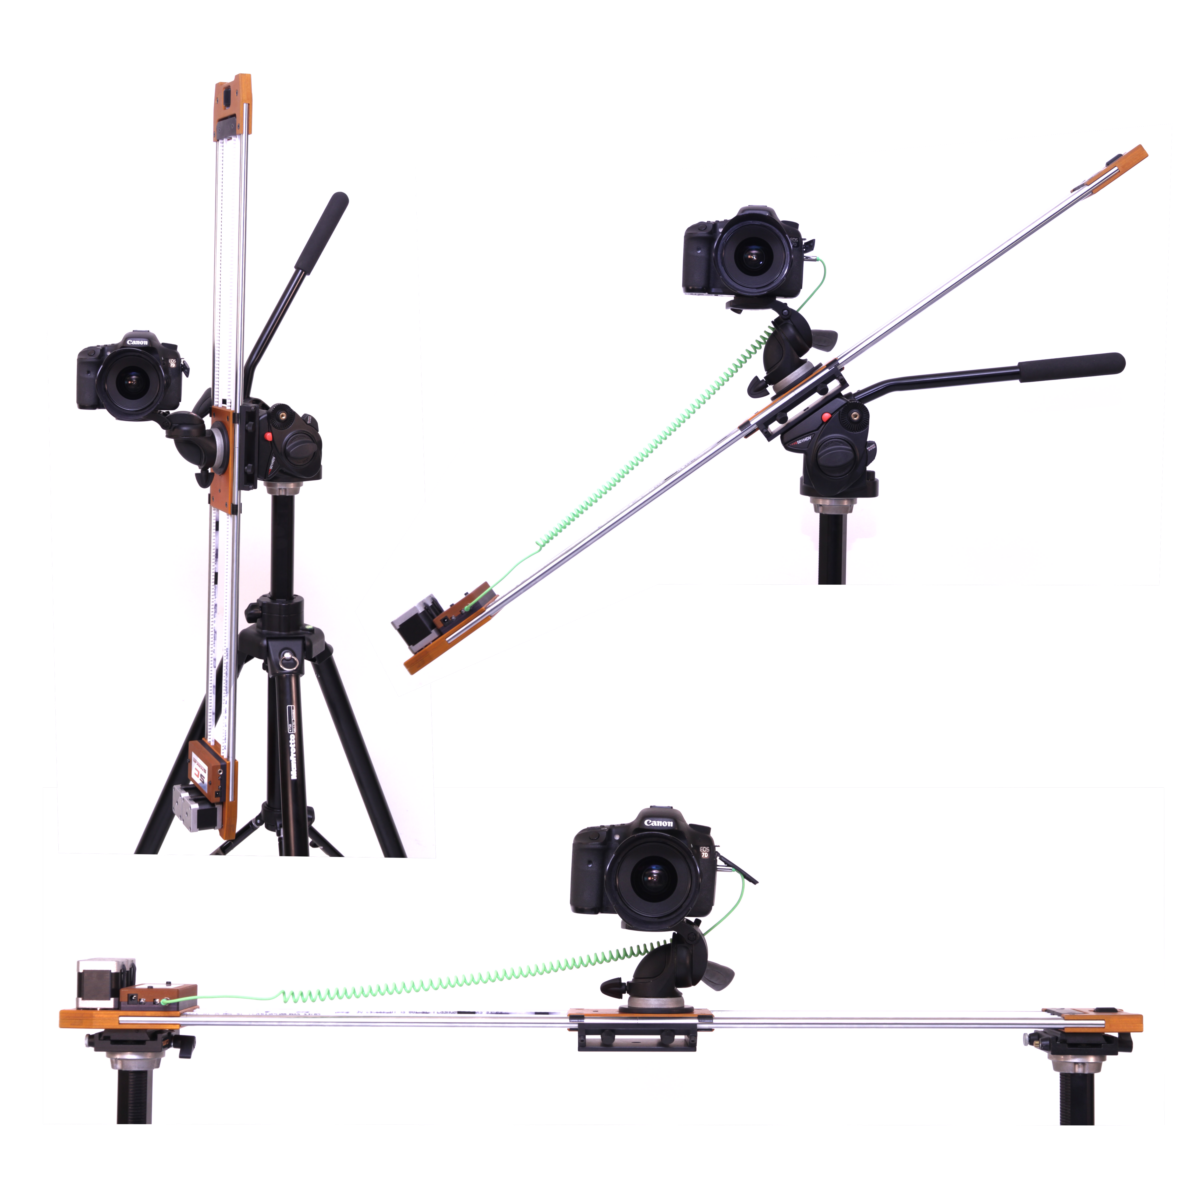 Fusion Between Art and Technology: Sincrocam Robotized 2 Axis Panoramic Slider For Video And Time-Lapse - http://blog.planet5d.com/2014/07/fusion-between-art-and-technology-sincrocam-robotized-2-axis-panoramic-slider-for-video-and-time-lapse/